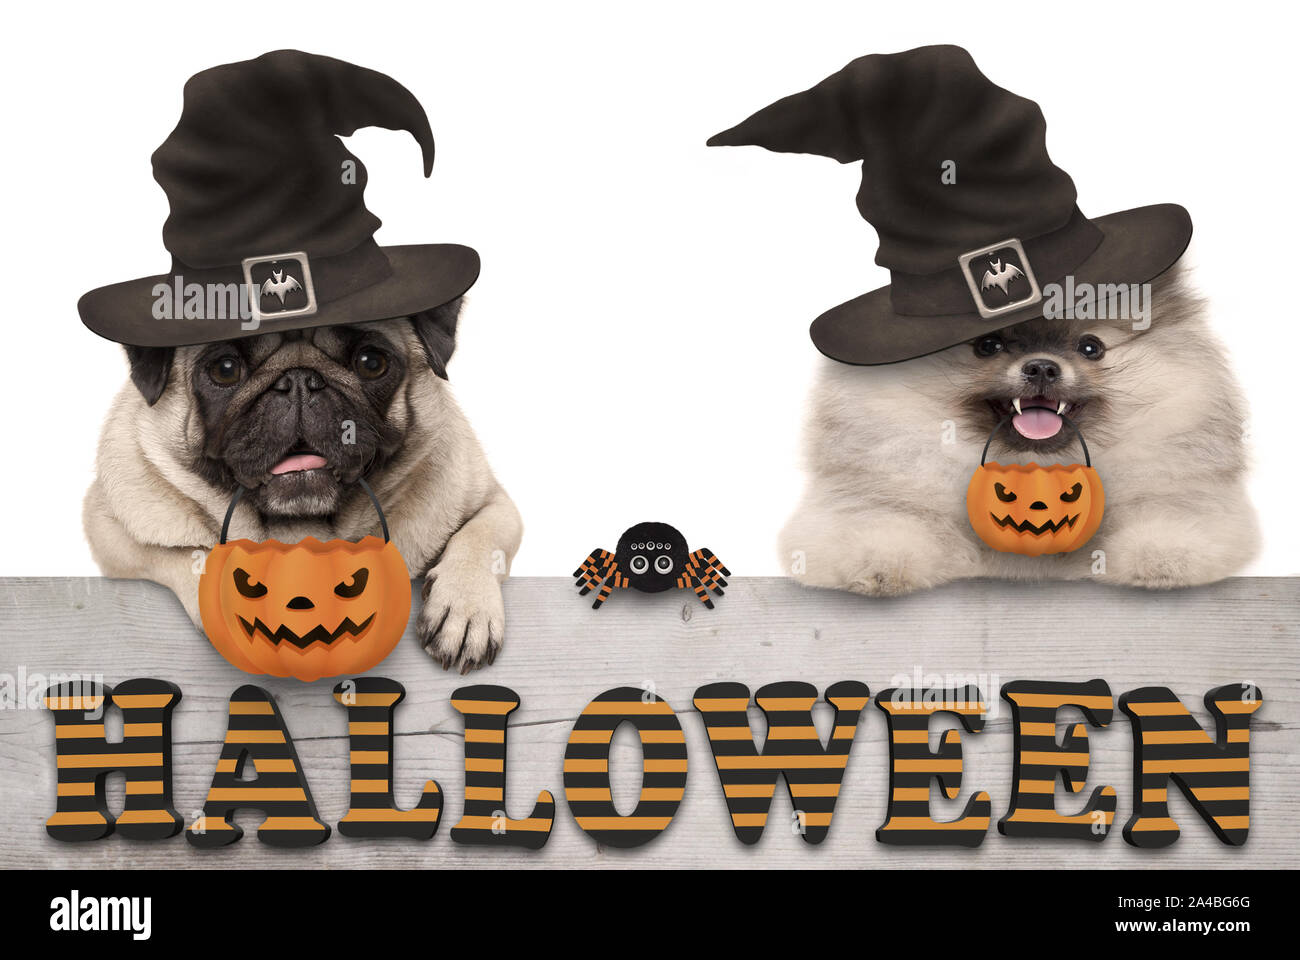 cute halloween puppy dogs - pug and pomeranian spitz - with pumpkin candy basket for trick and treat, on wooden banner with text, isolated Stock Photo